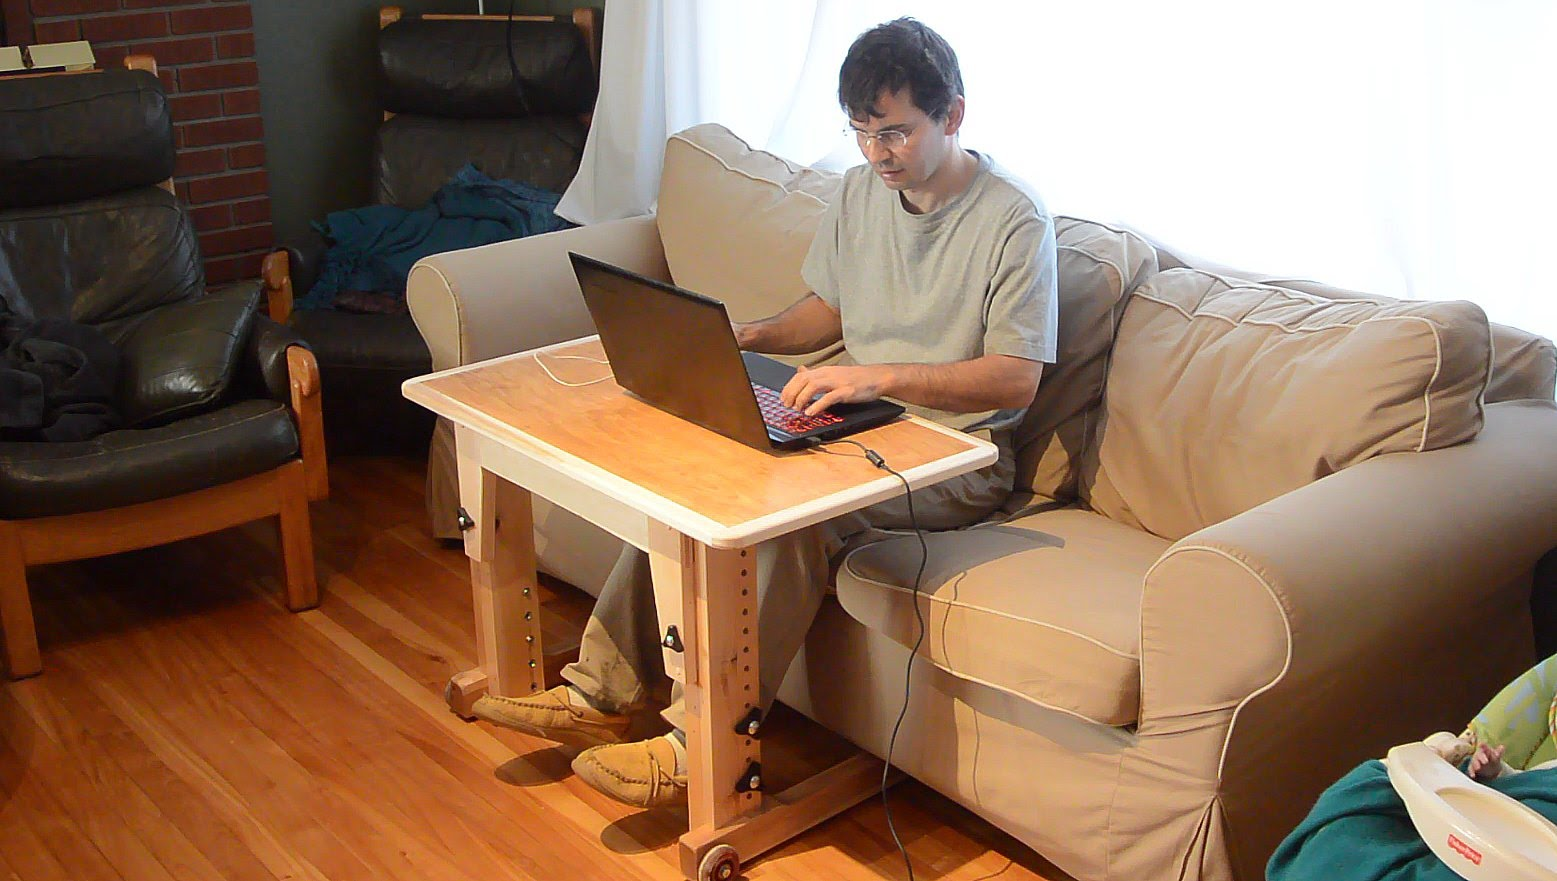 Knock Down Laptop Table For Couch / Standup Desk